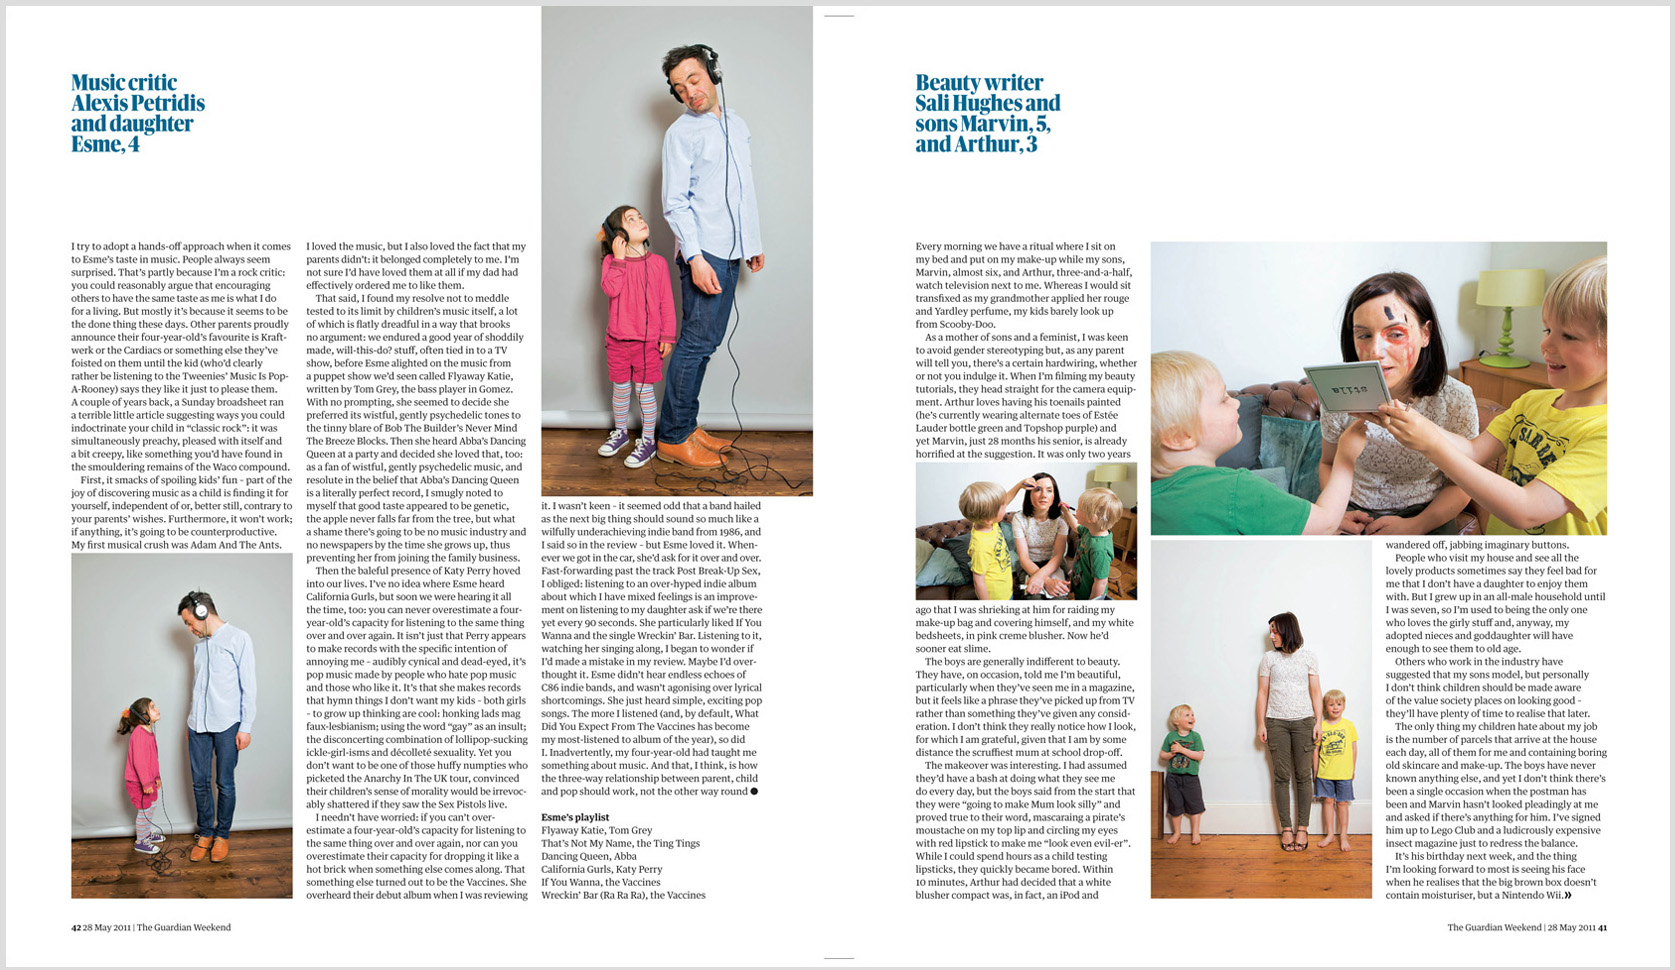 Tear sheet from the Guardian Weekend